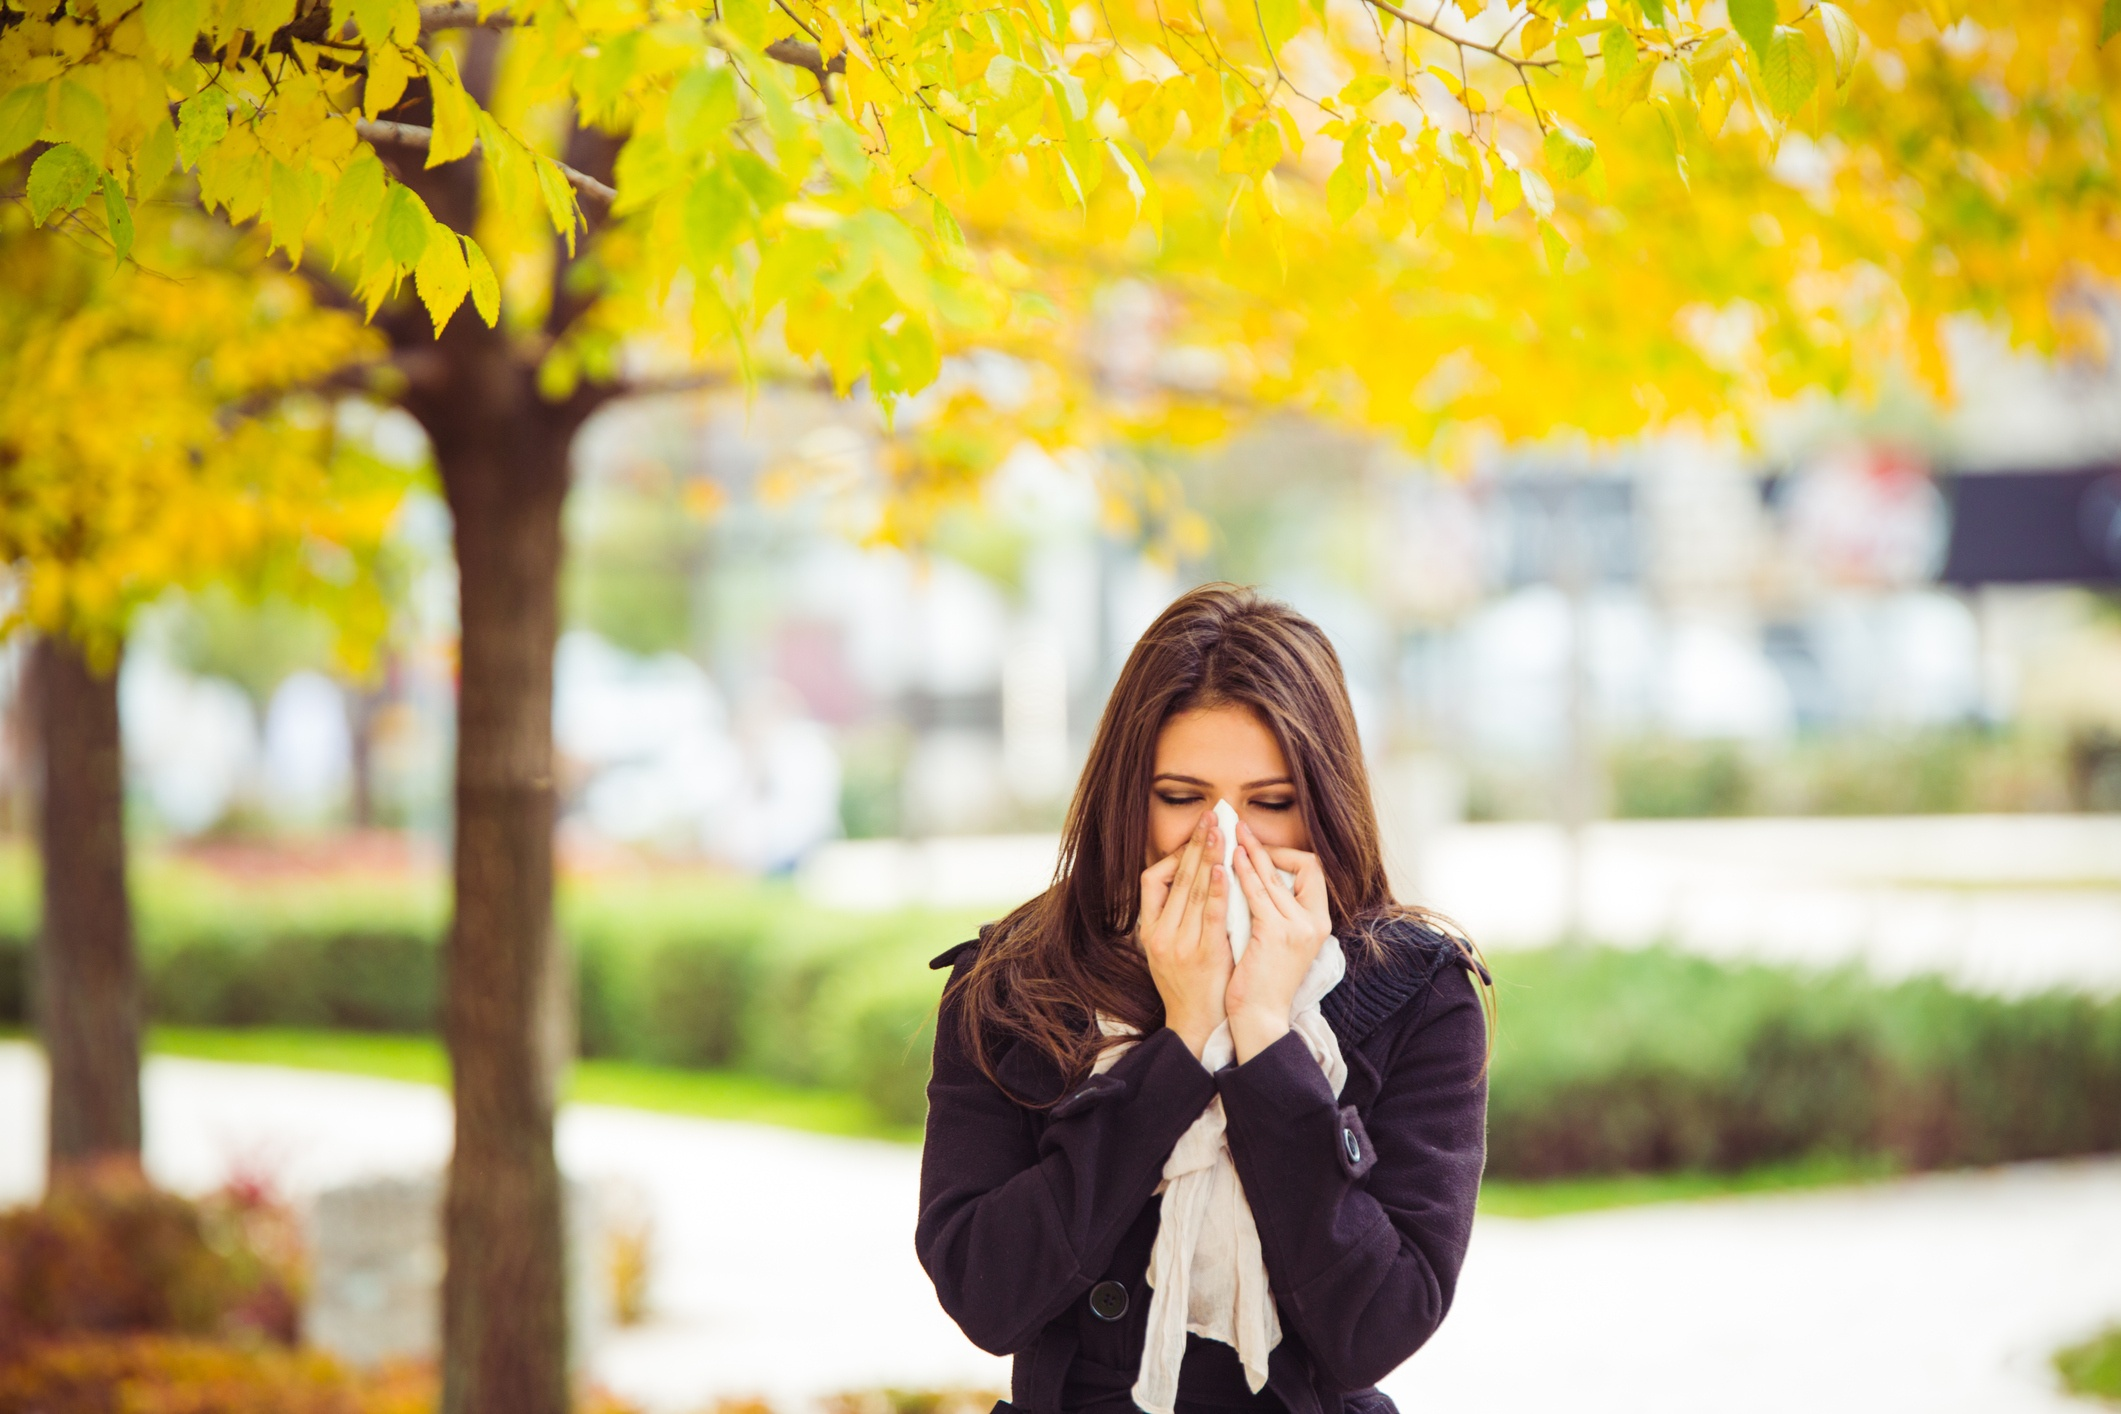 Woman blowing her nose in front of trees